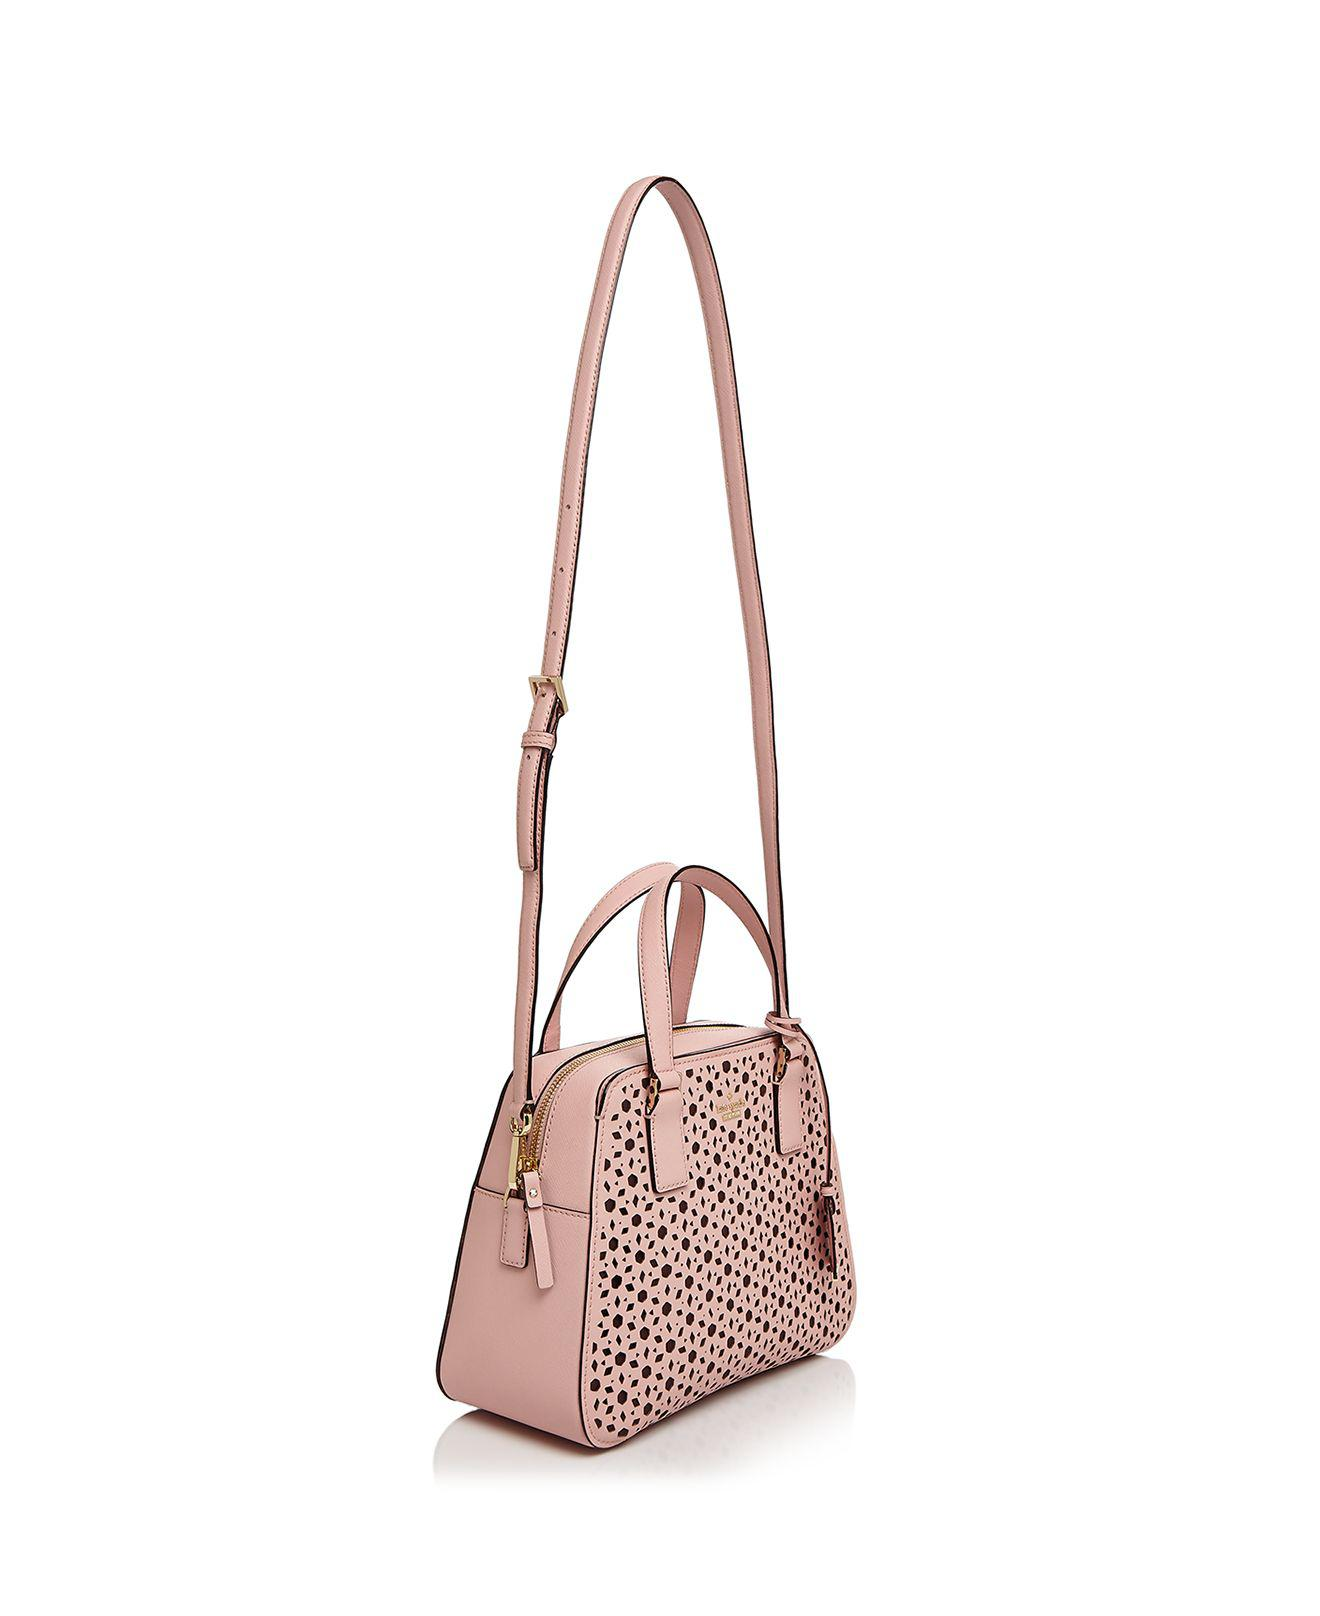 d4174b0fd98 Kate Spade Cameron Street Little Babe Perforated Leather Satchel in ...